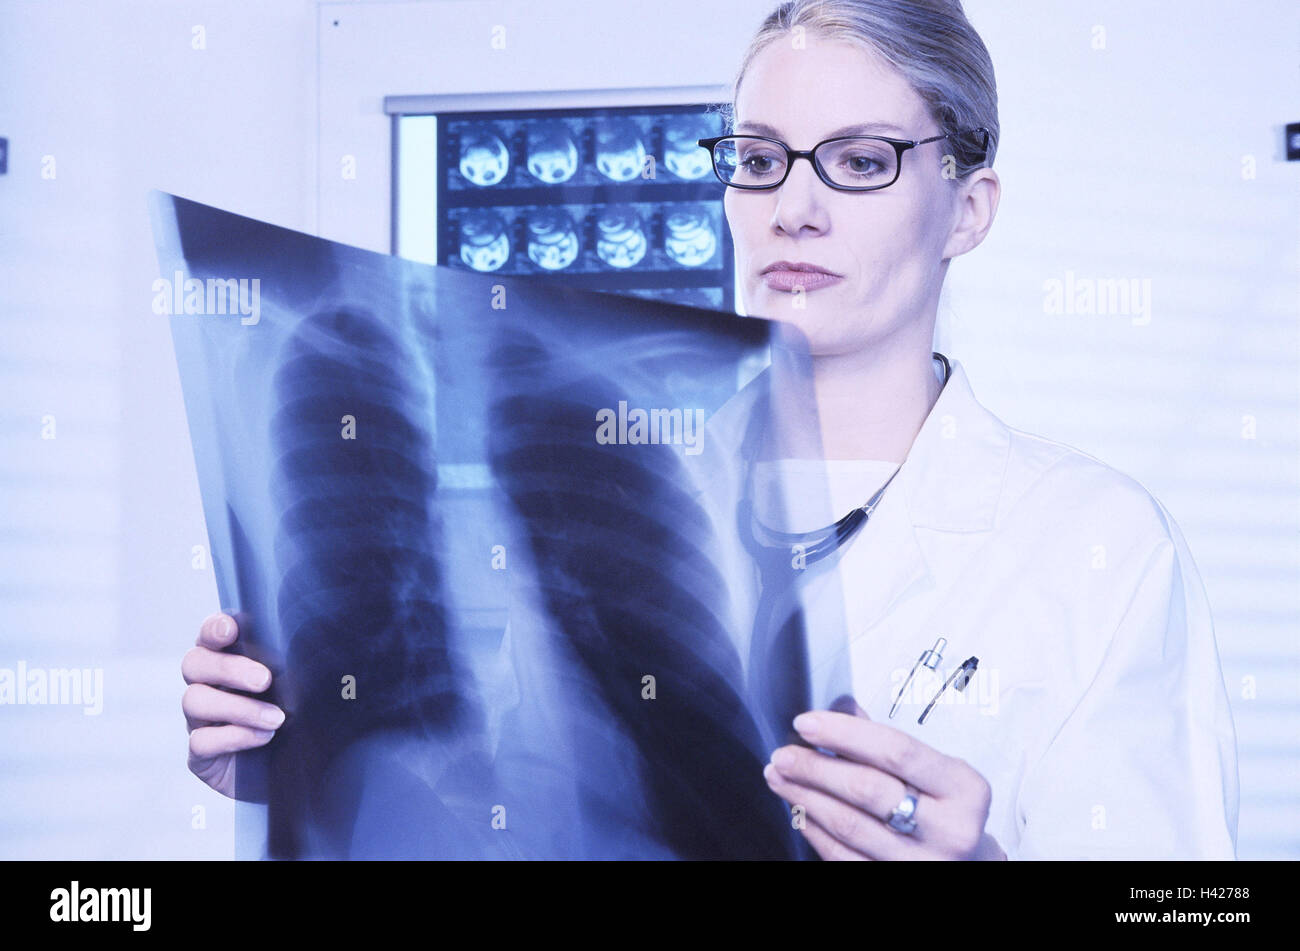 At doctor, seriously, roentgenogram, look, diagnostic, portrait, practise, medical practise, roentgenology, X-ray - Stock Image